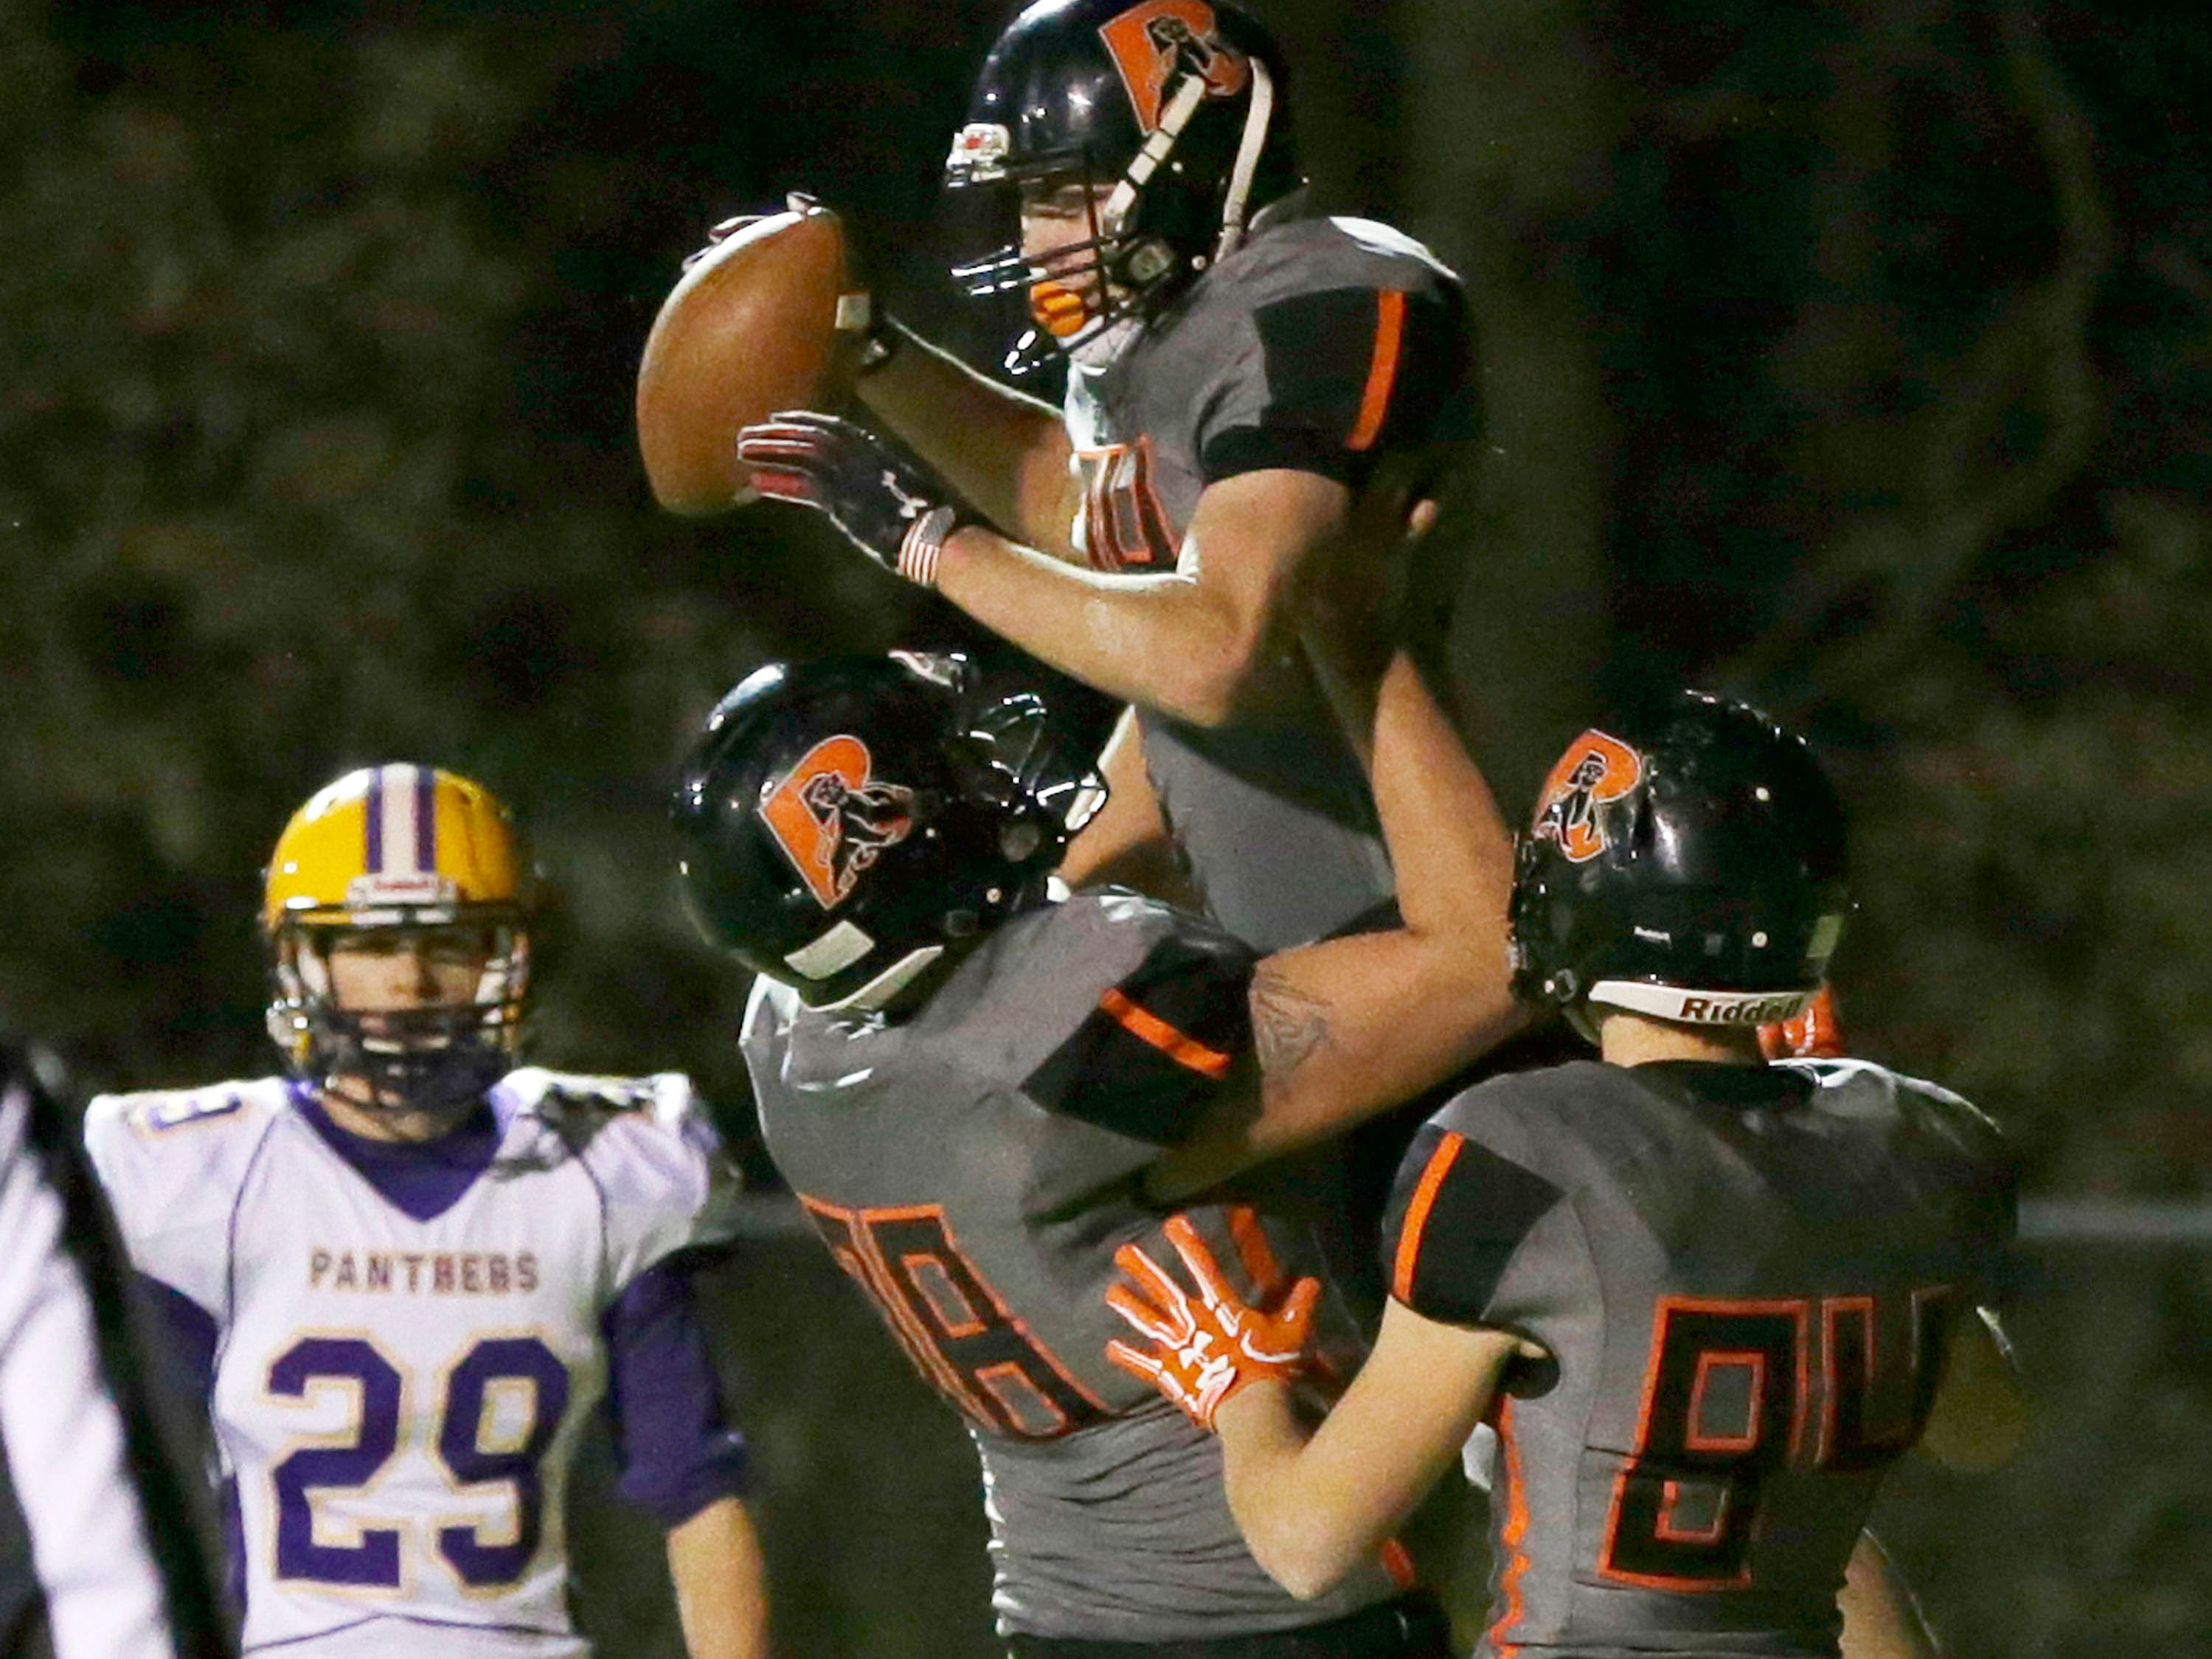 Reedsville's Brandon Stelzer (34) celebrats in the end zone after scoring a touchdown against Pittsville, Friday, November 2, 2018, in Reedsville, Wis.